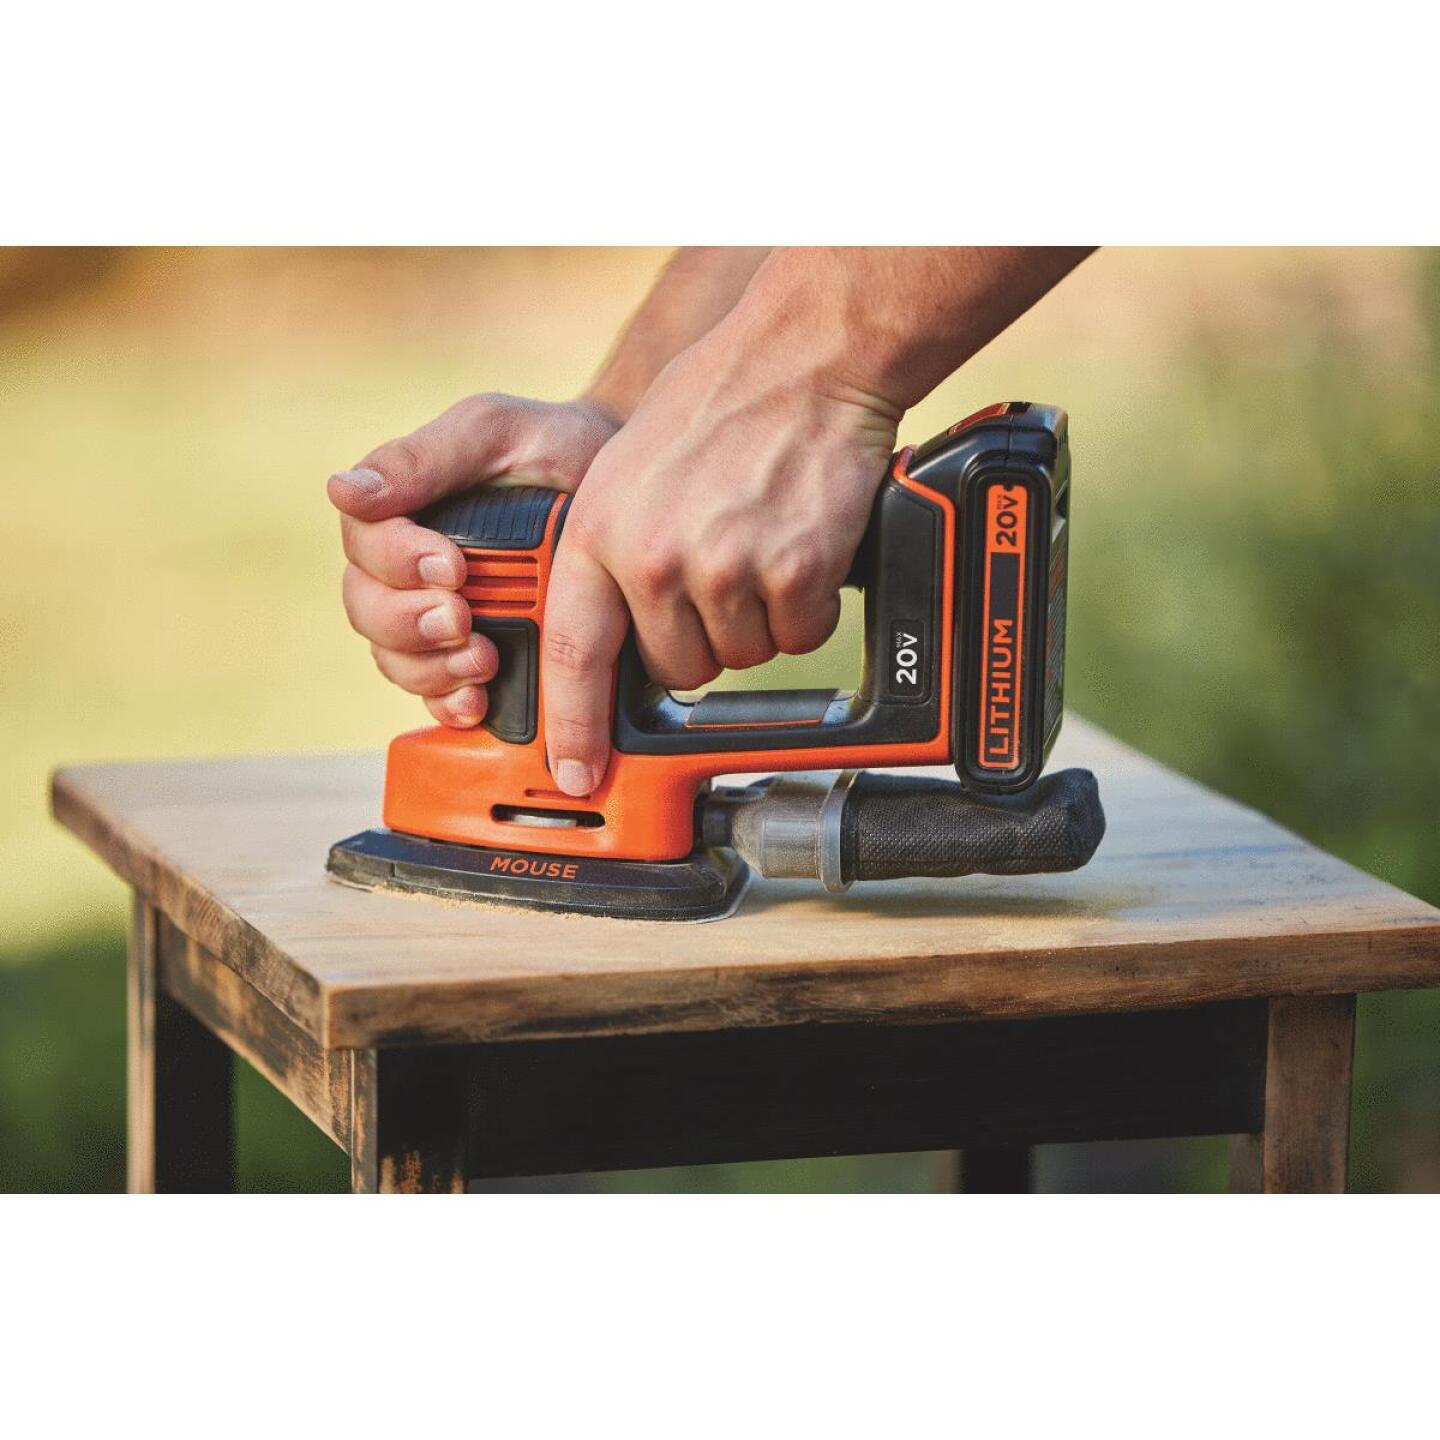 Black & Decker 20-Volt MAX Lithium-Ion Mouse Cordless Finish Sander Image 4